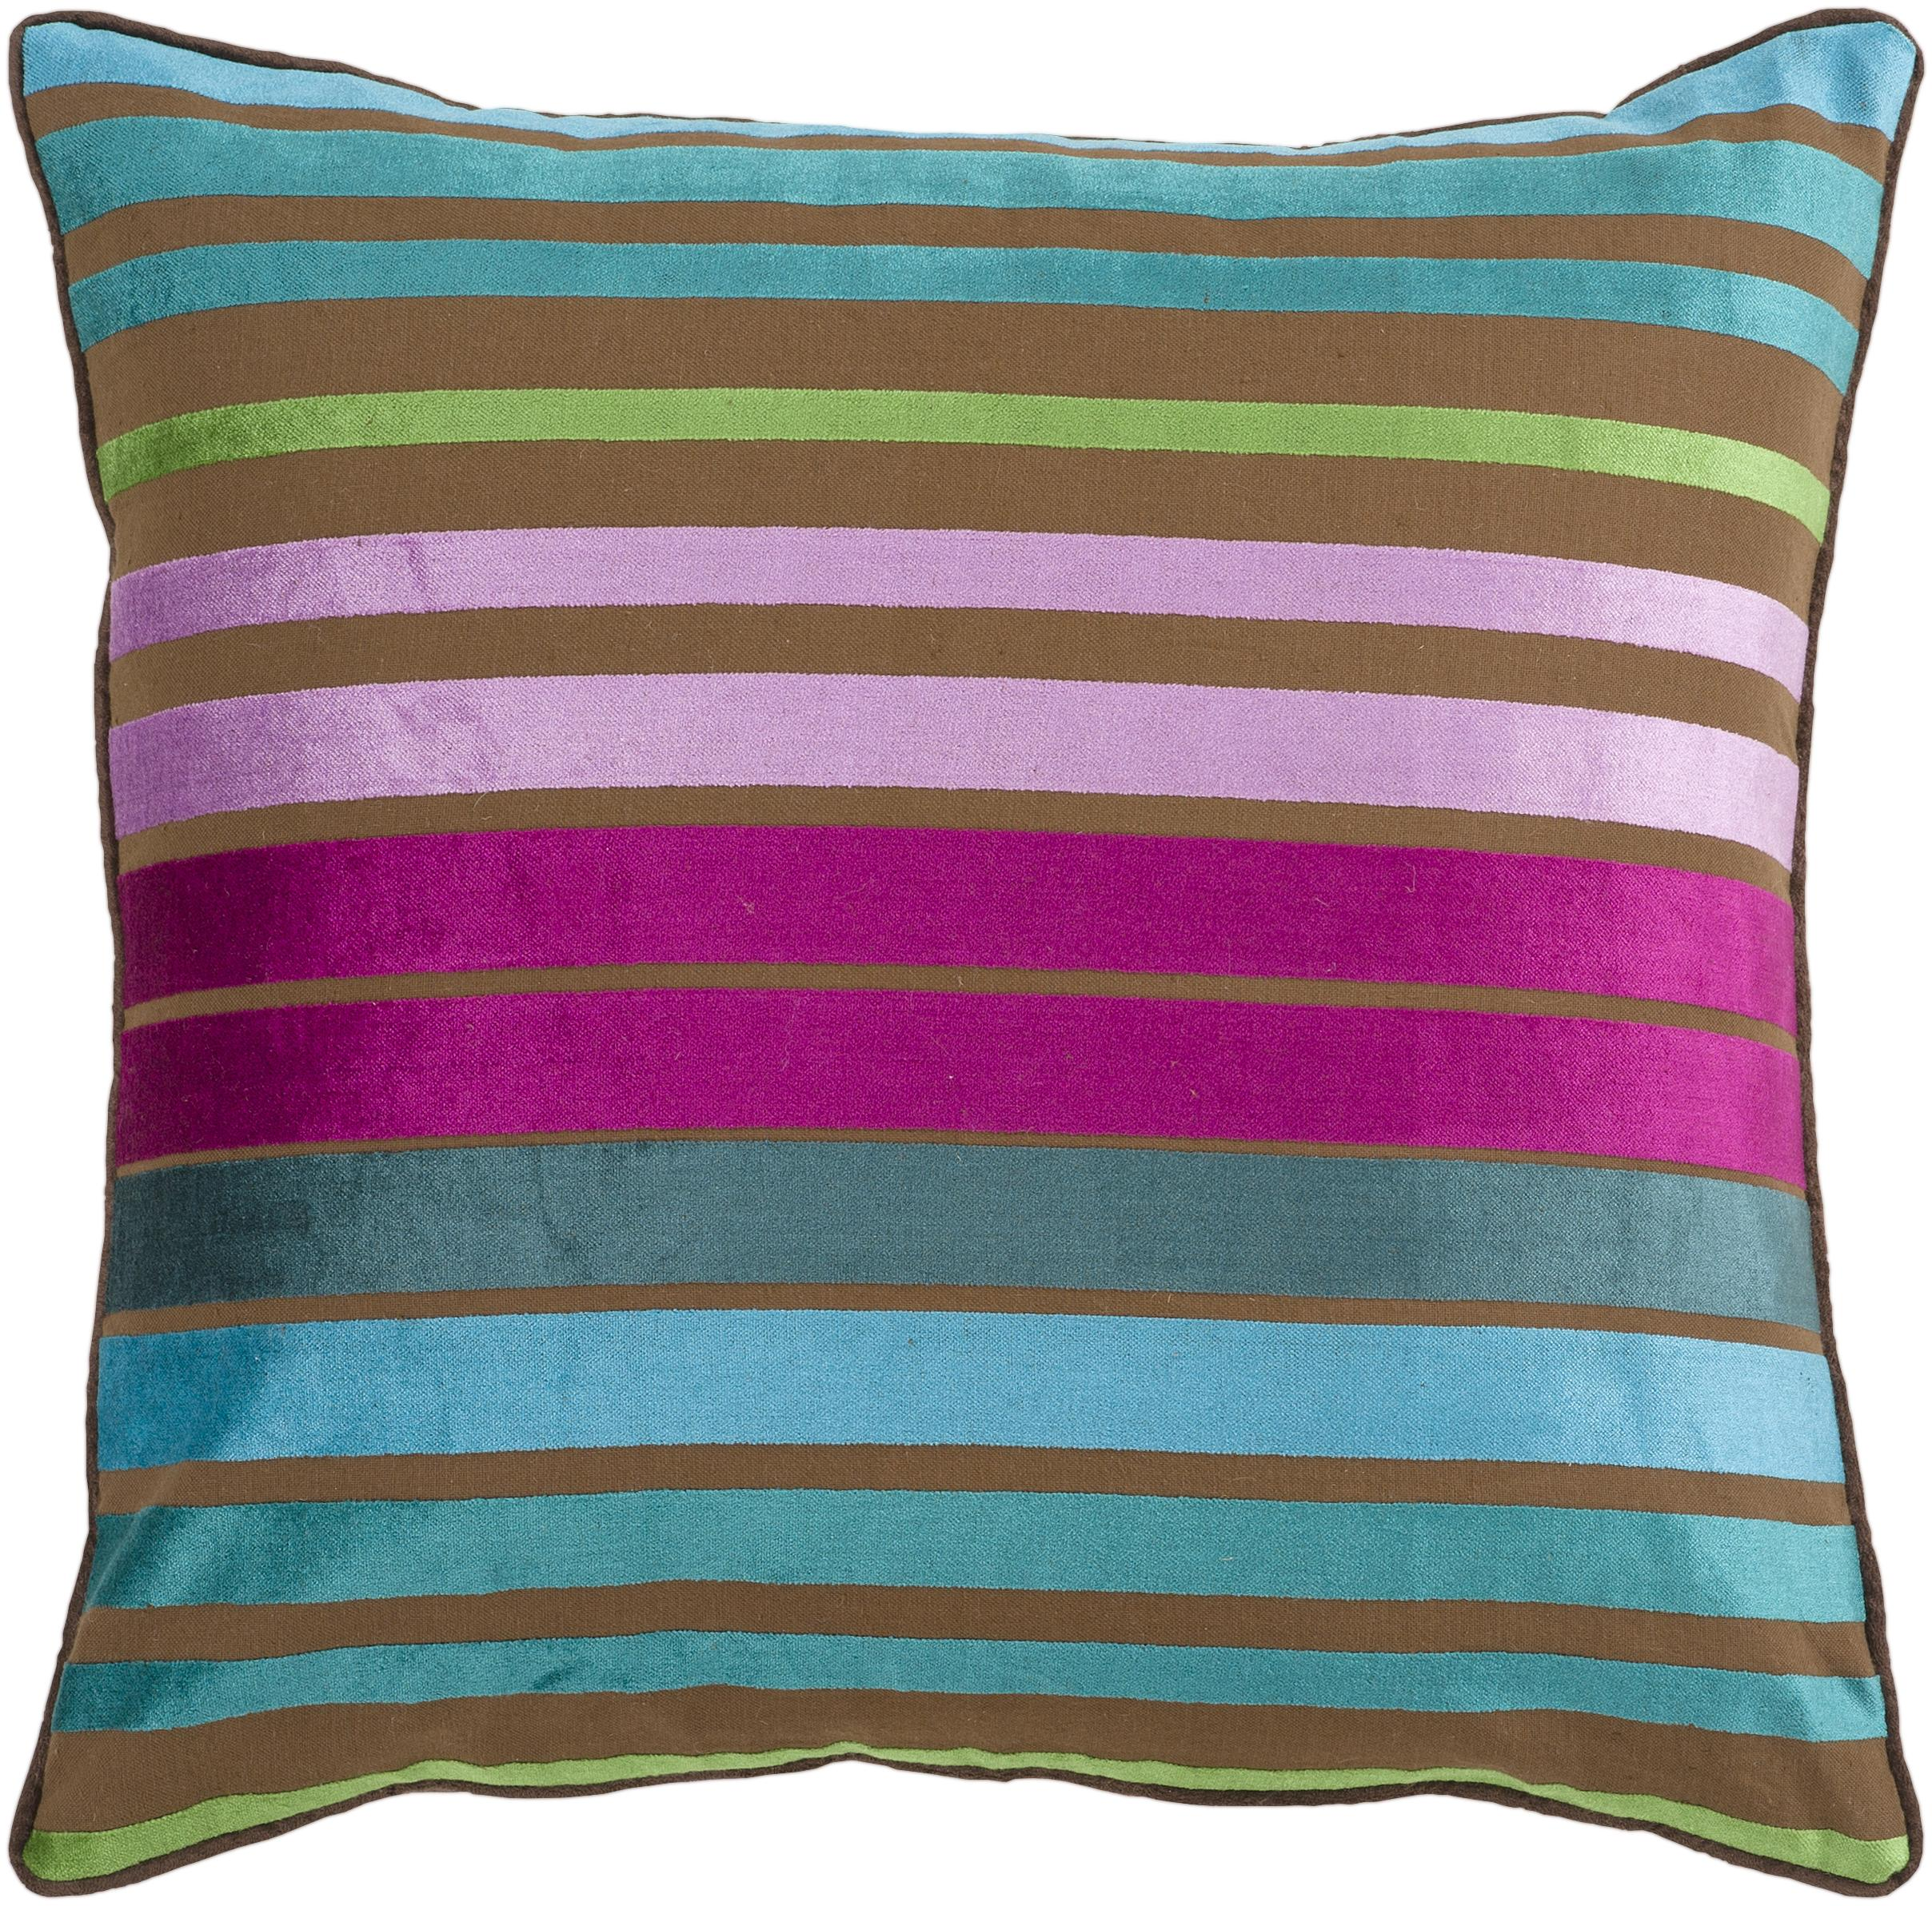 "Surya Rugs Pillows 18"" x 18"" Pillow - Item Number: JS019-1818P"